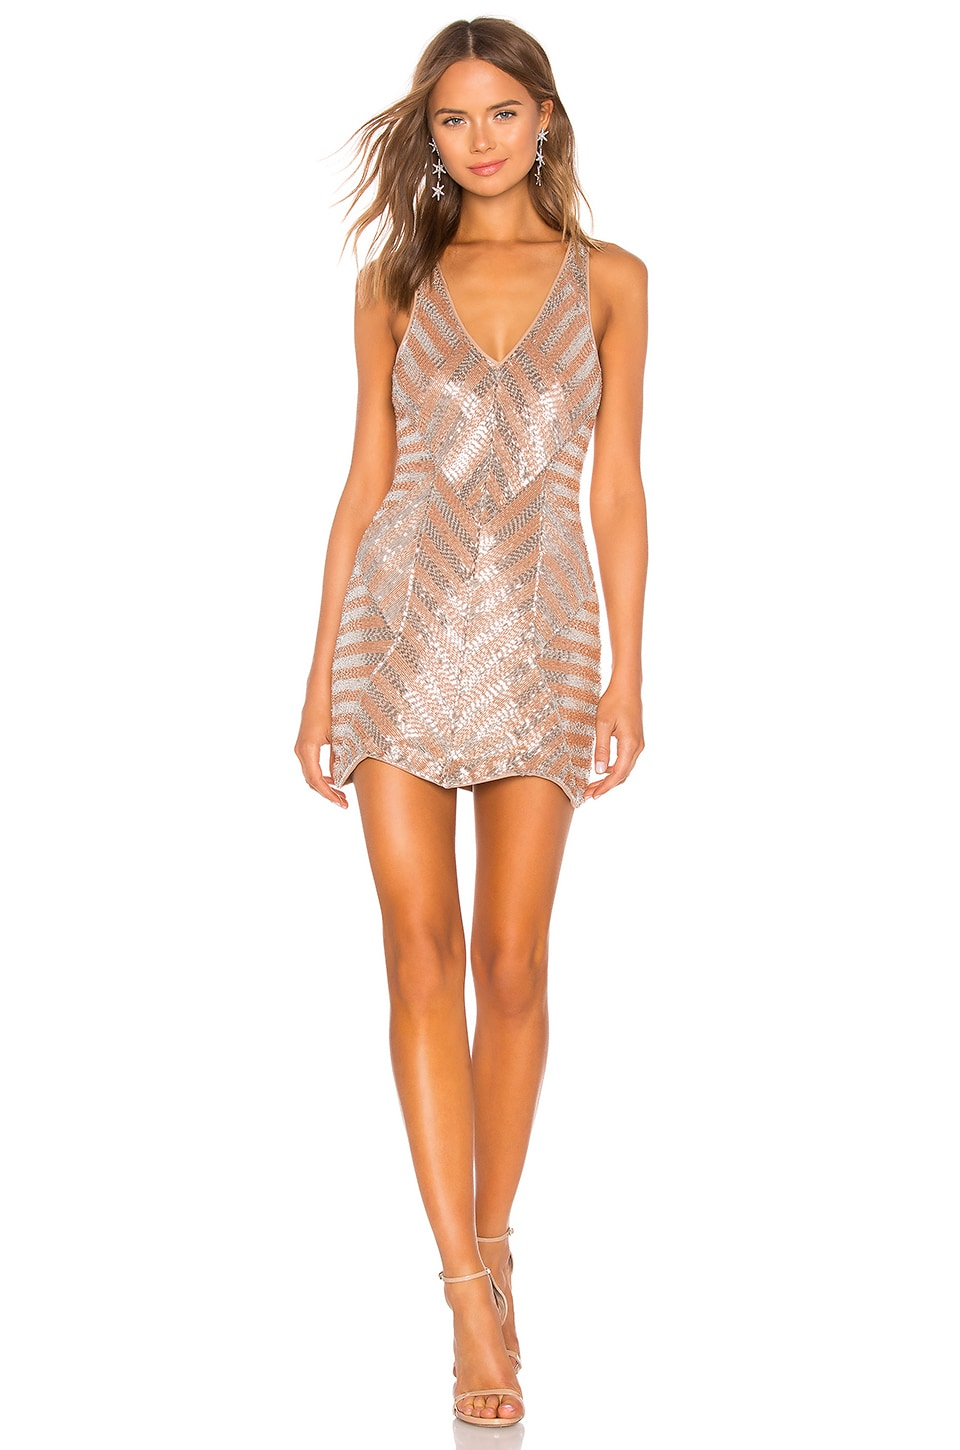 X by NBD Europa Embellished Mini Dress in Champagne & Silver